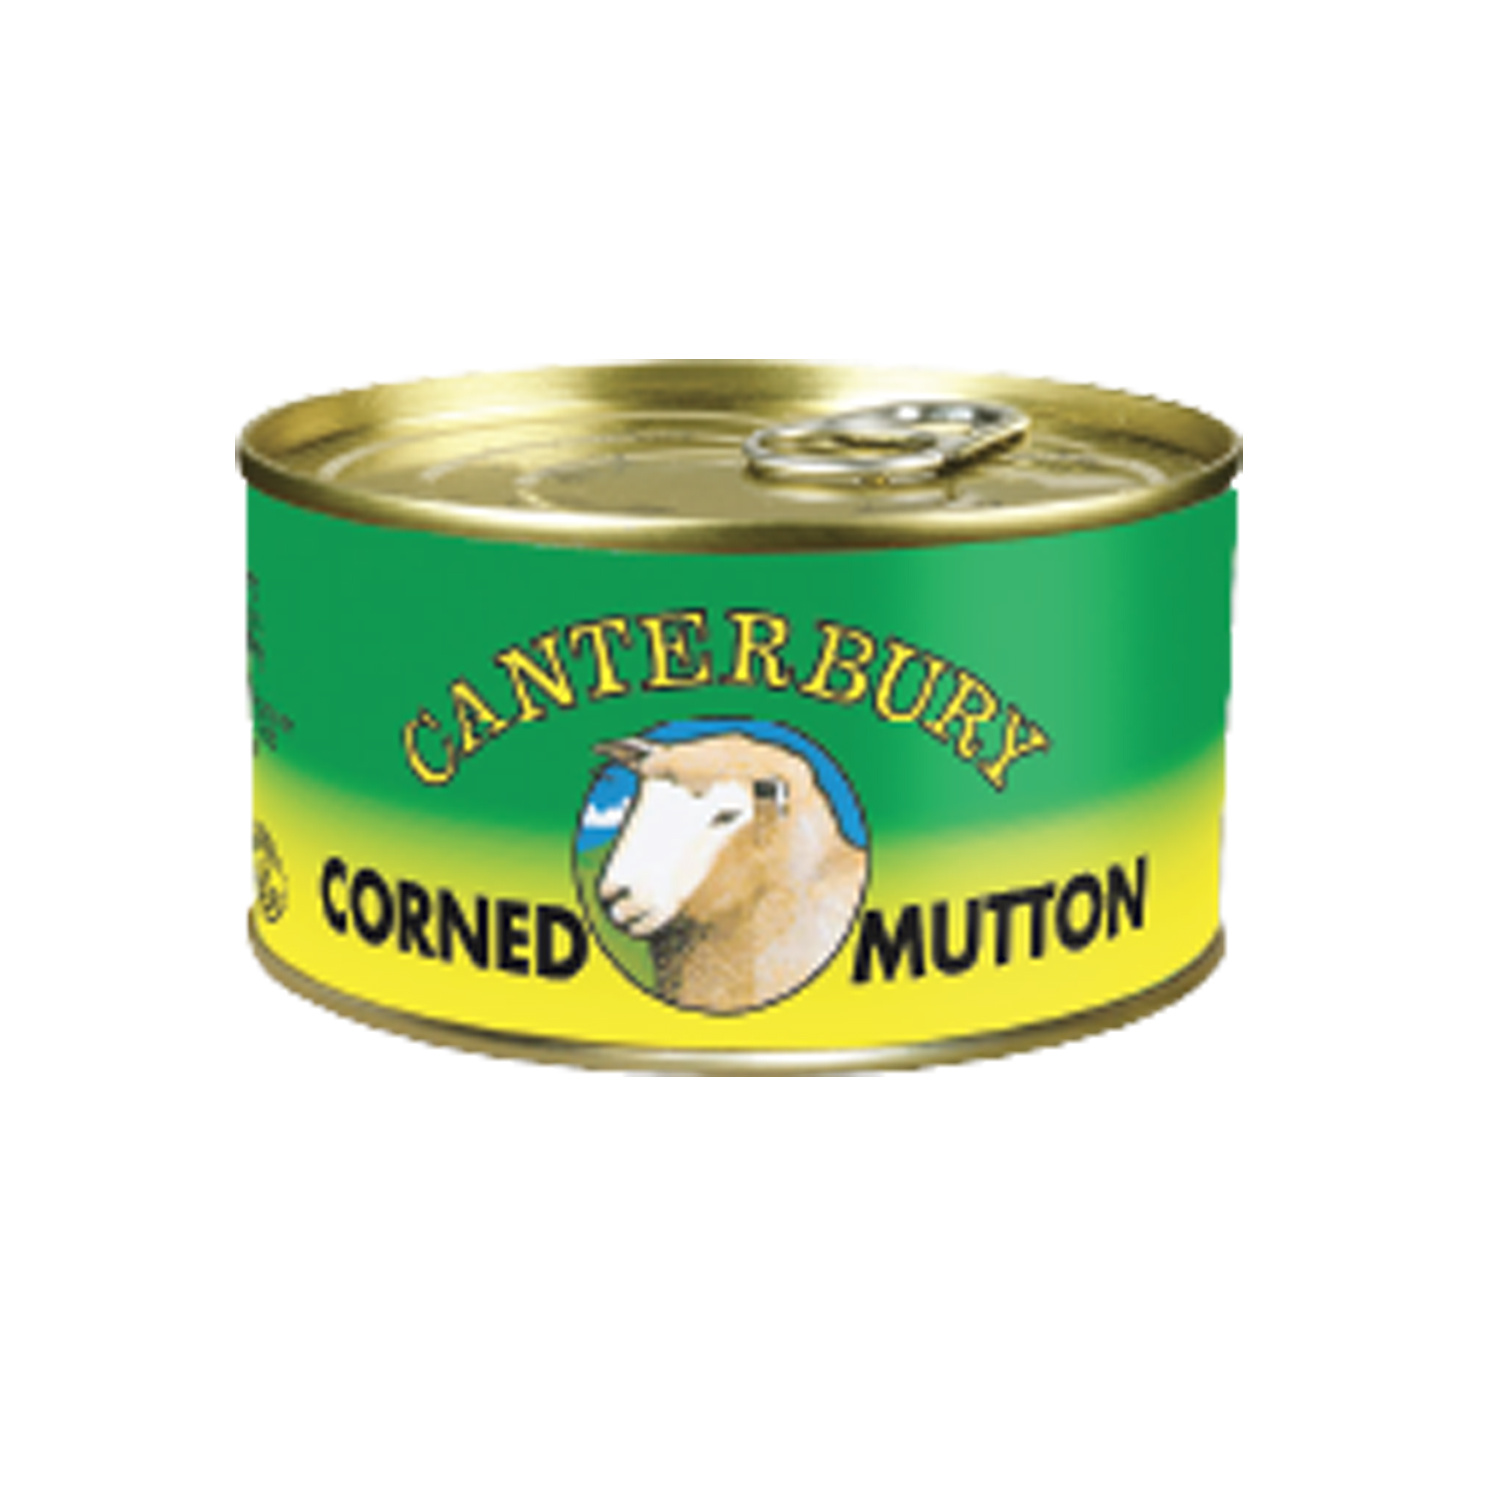 Canterbury Corned Mutton 326g